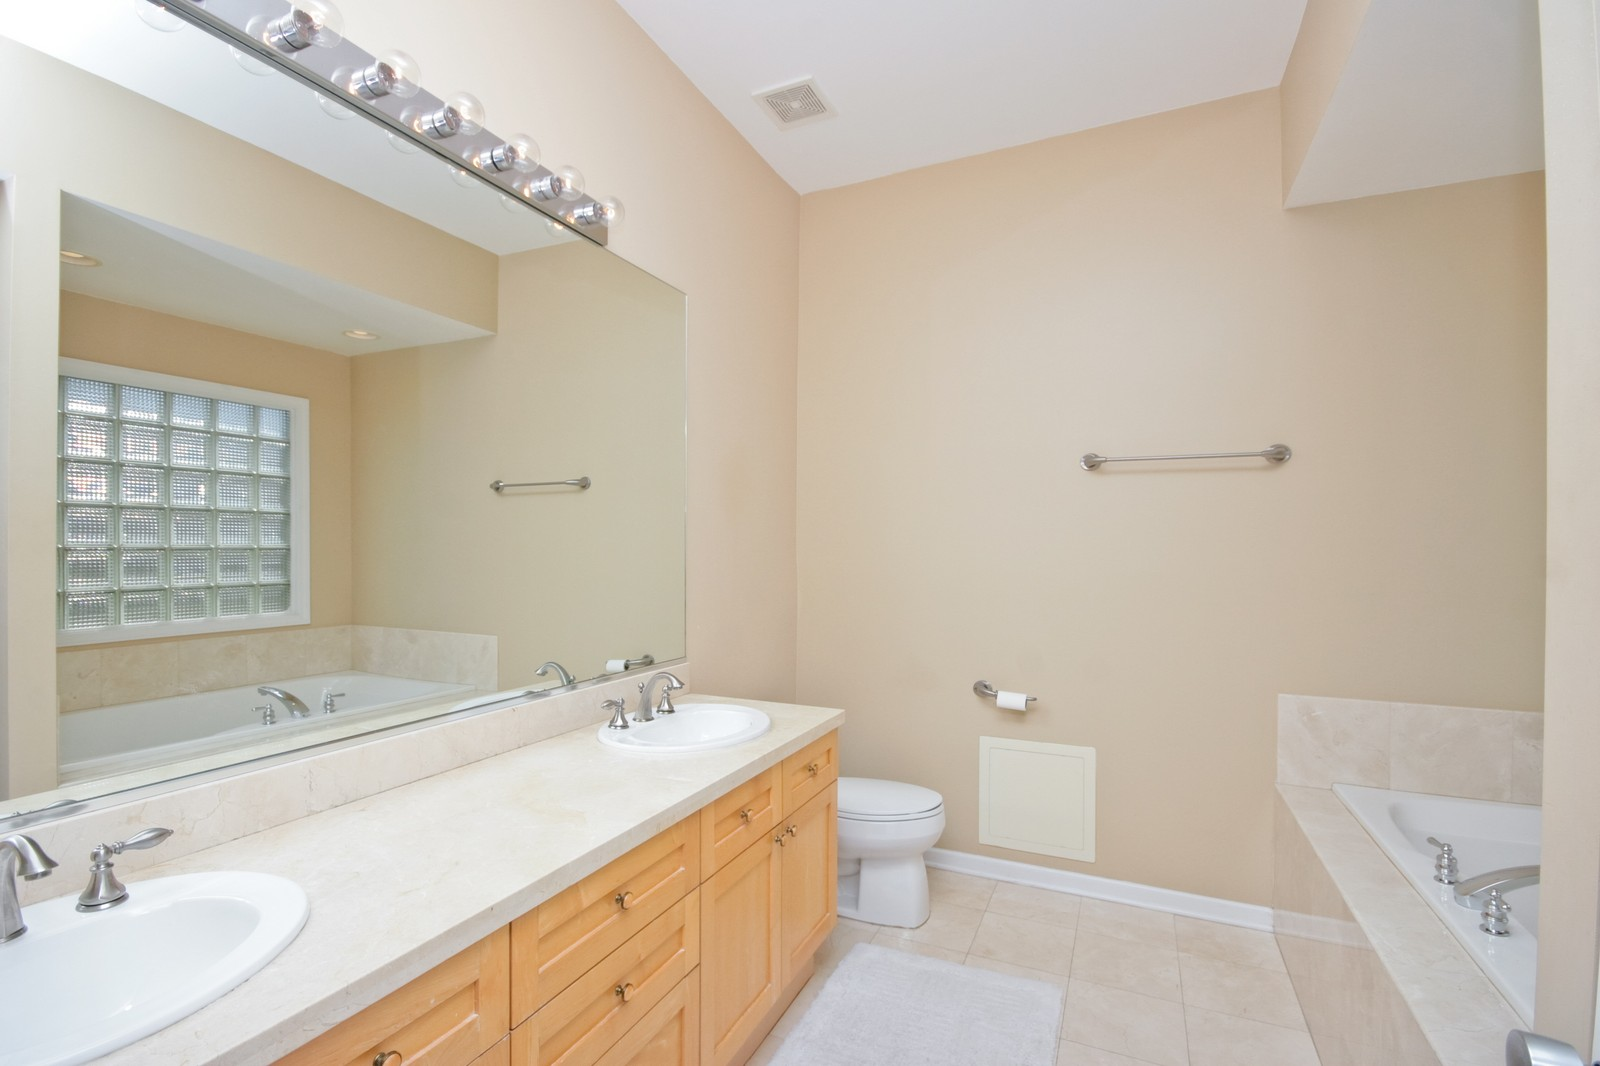 Real Estate Photography - 535 N Wood, Chicago, IL, 60622 - Master Bathroom